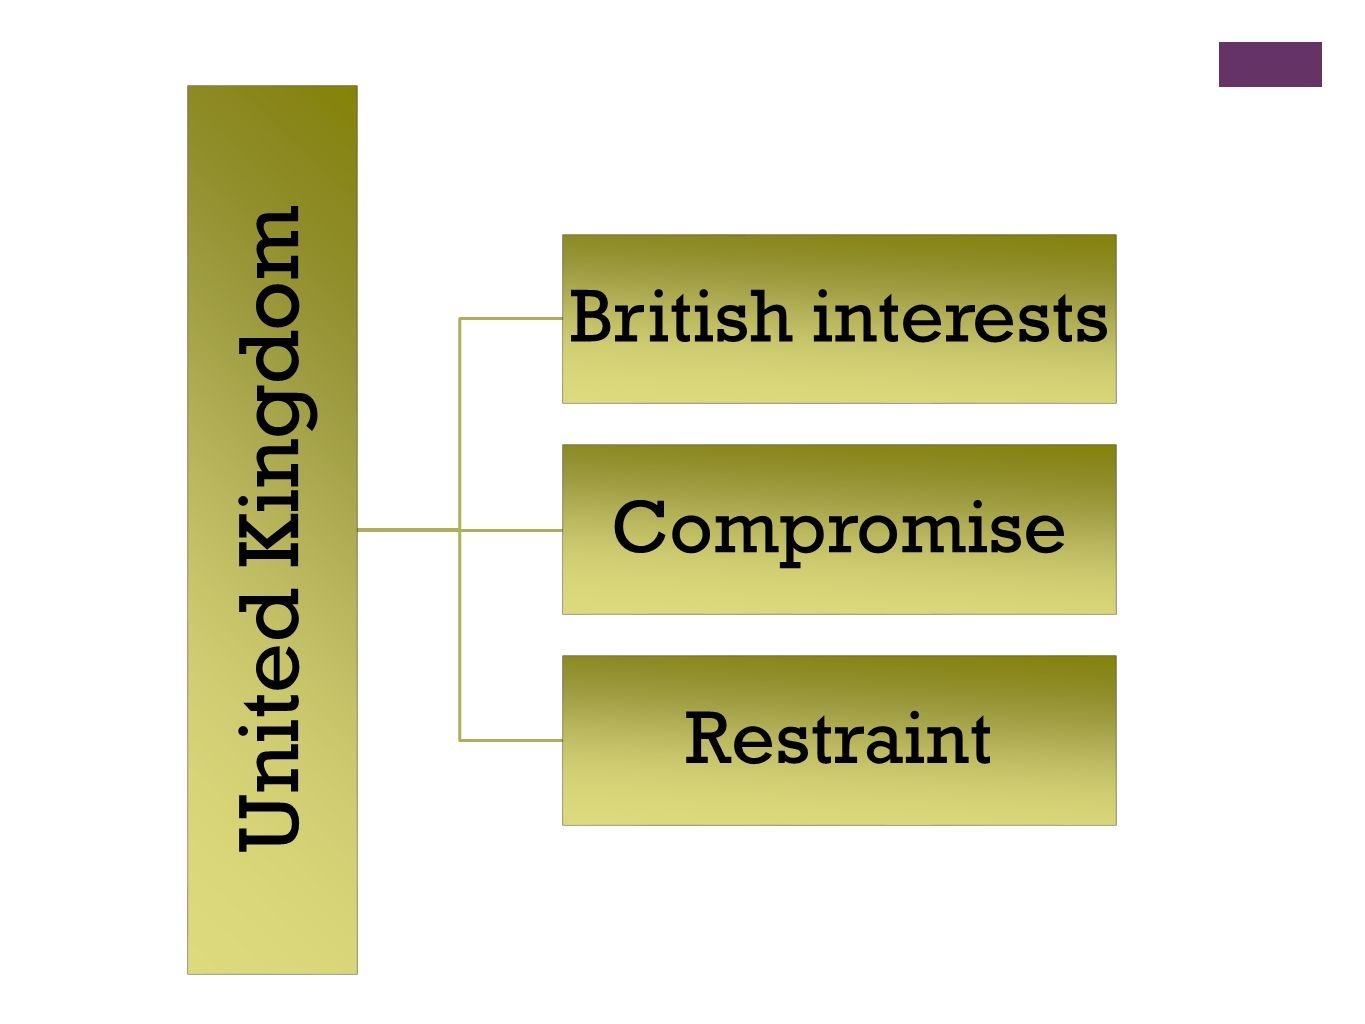 United Kingdom British interests Compromise Restraint